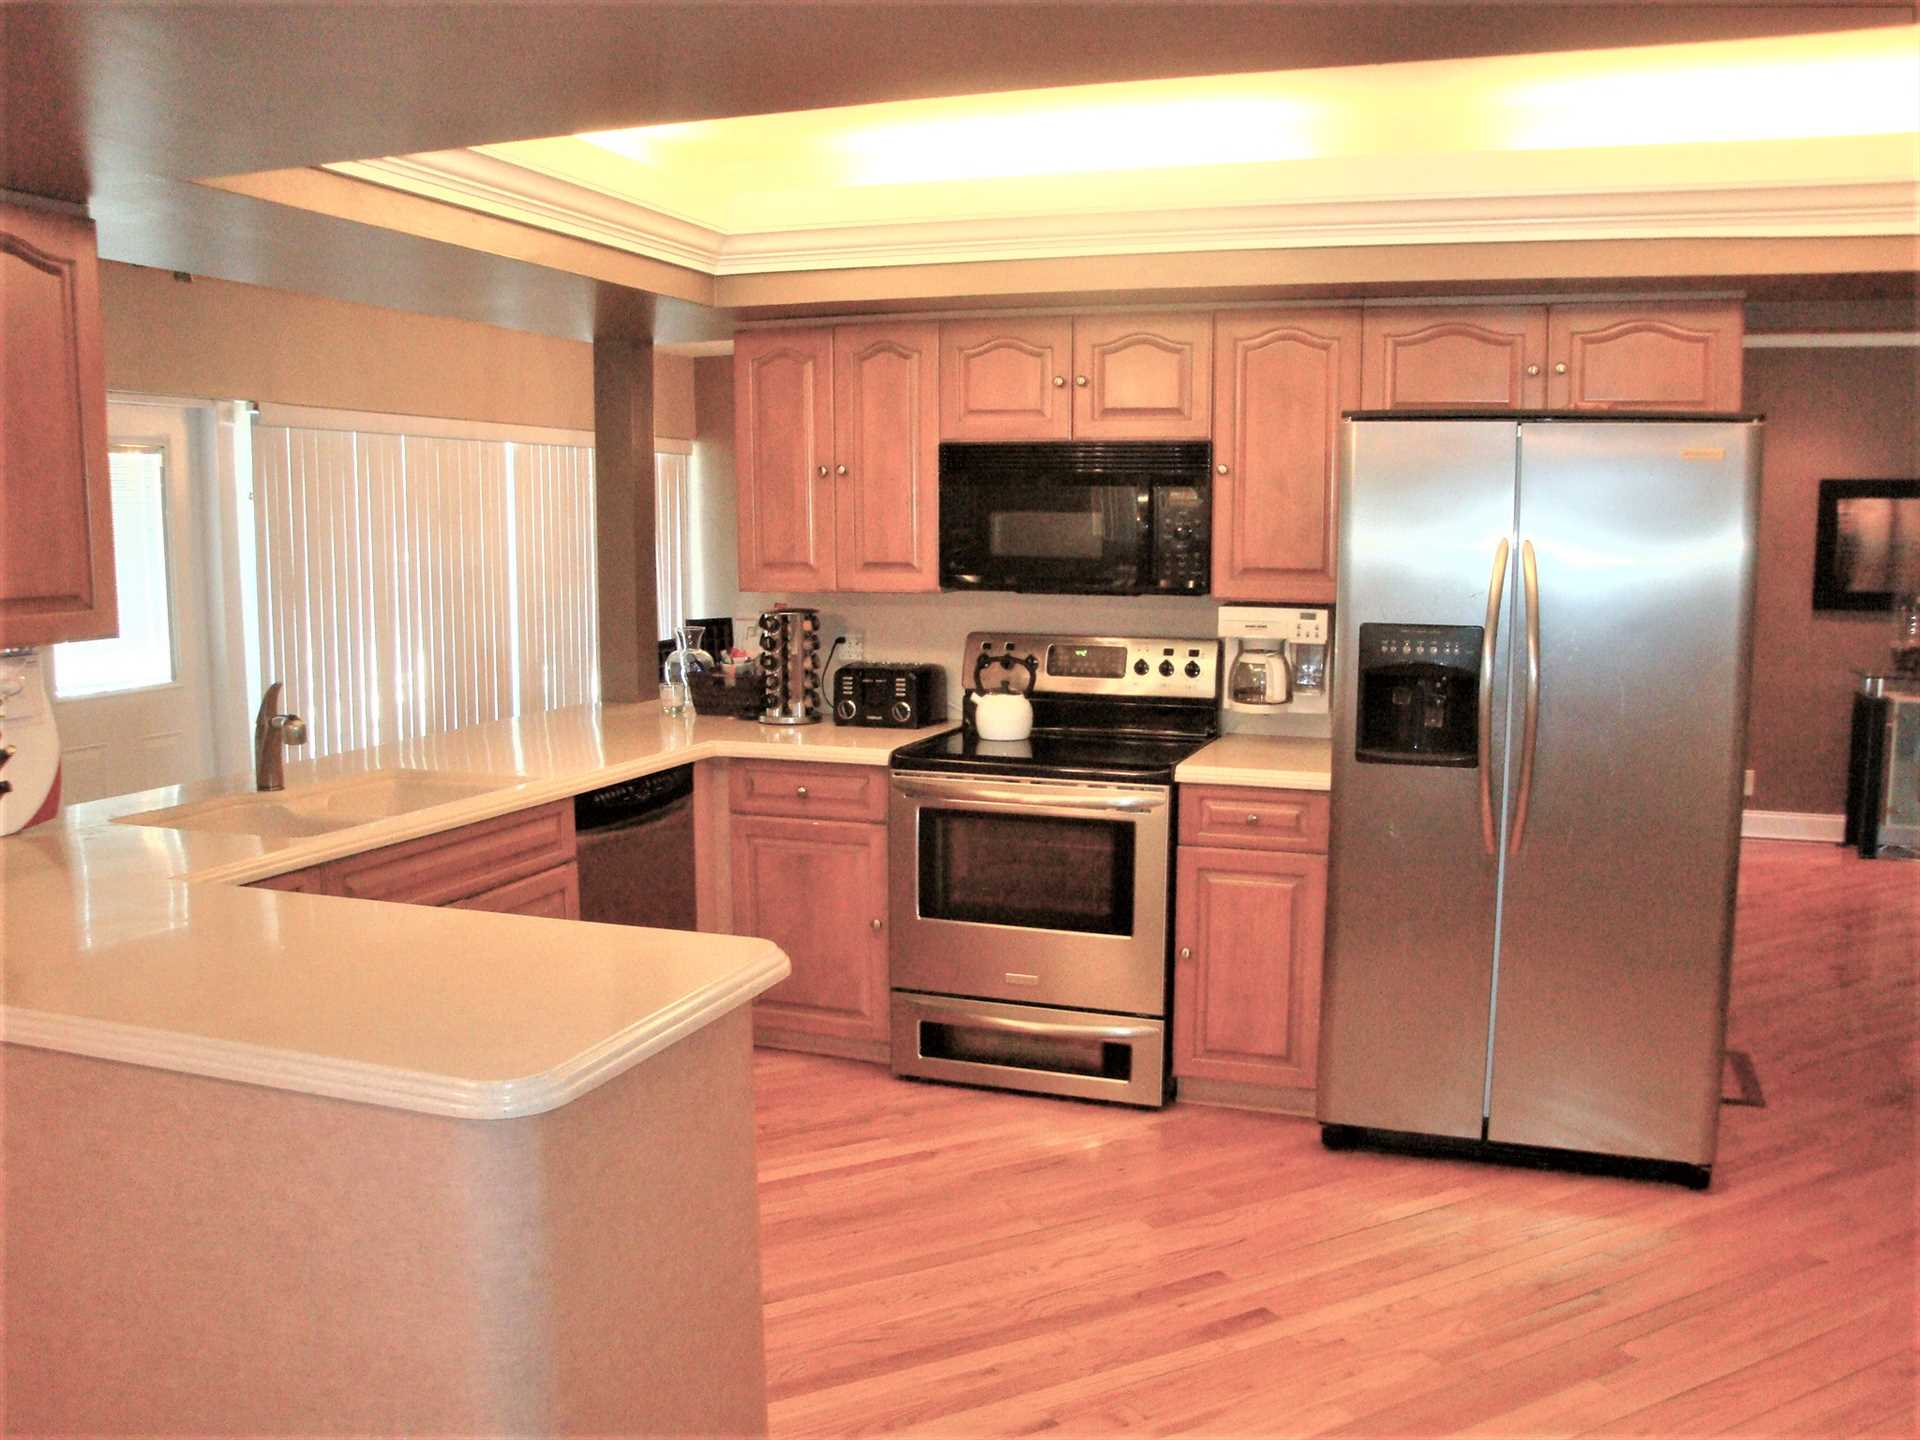 Open kitchen has all stainless appliances and solid wood cab